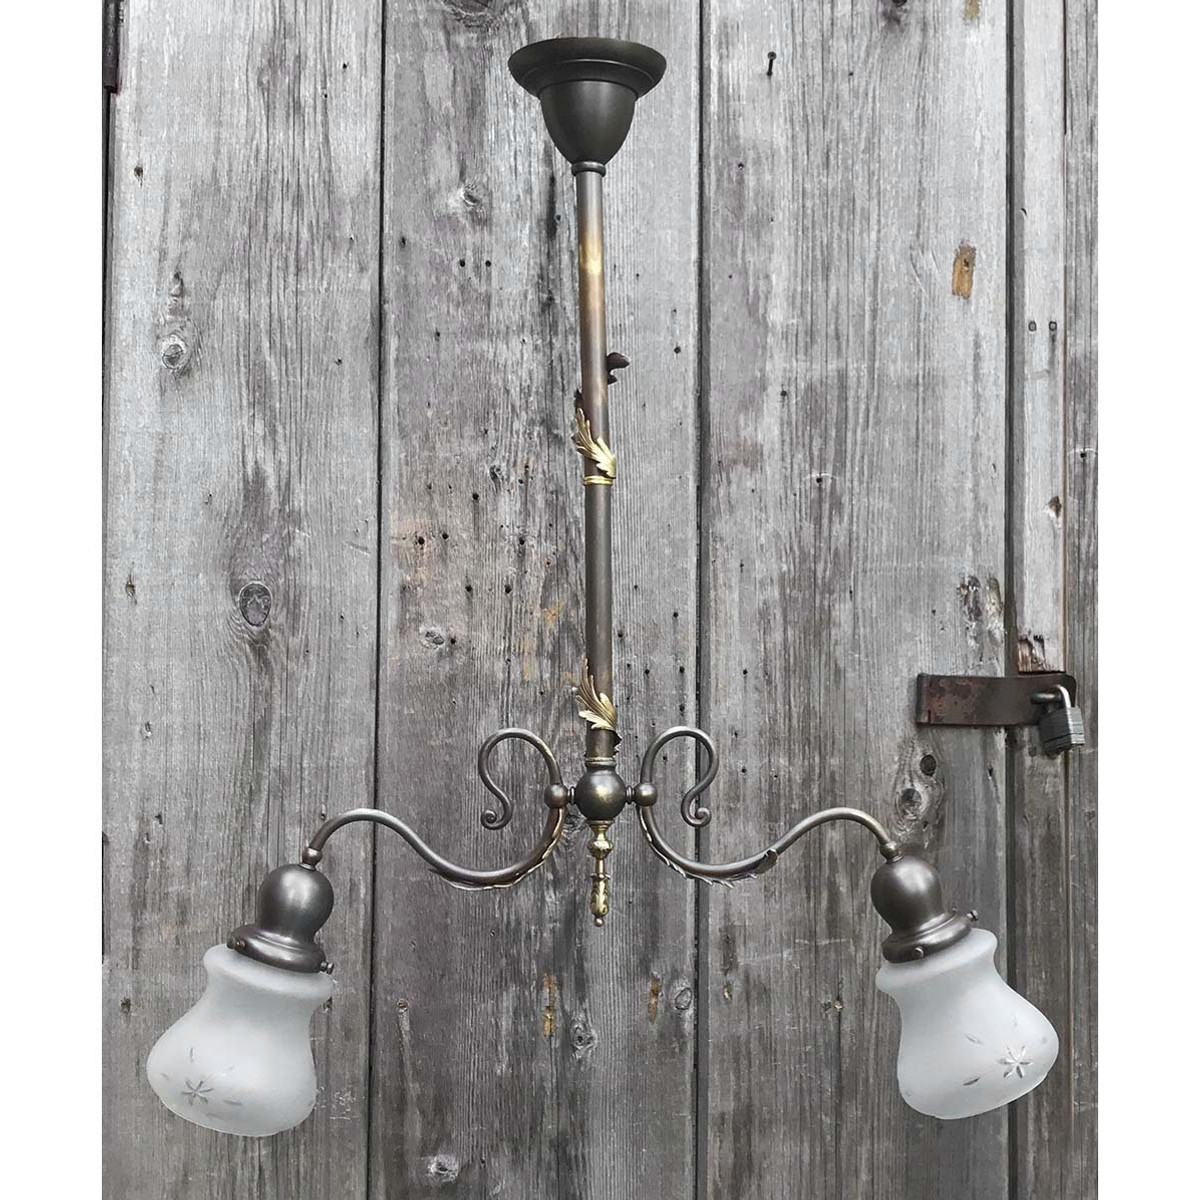 L17122 - Antique Colonial Revival Brass Two Light Hanging Fixture